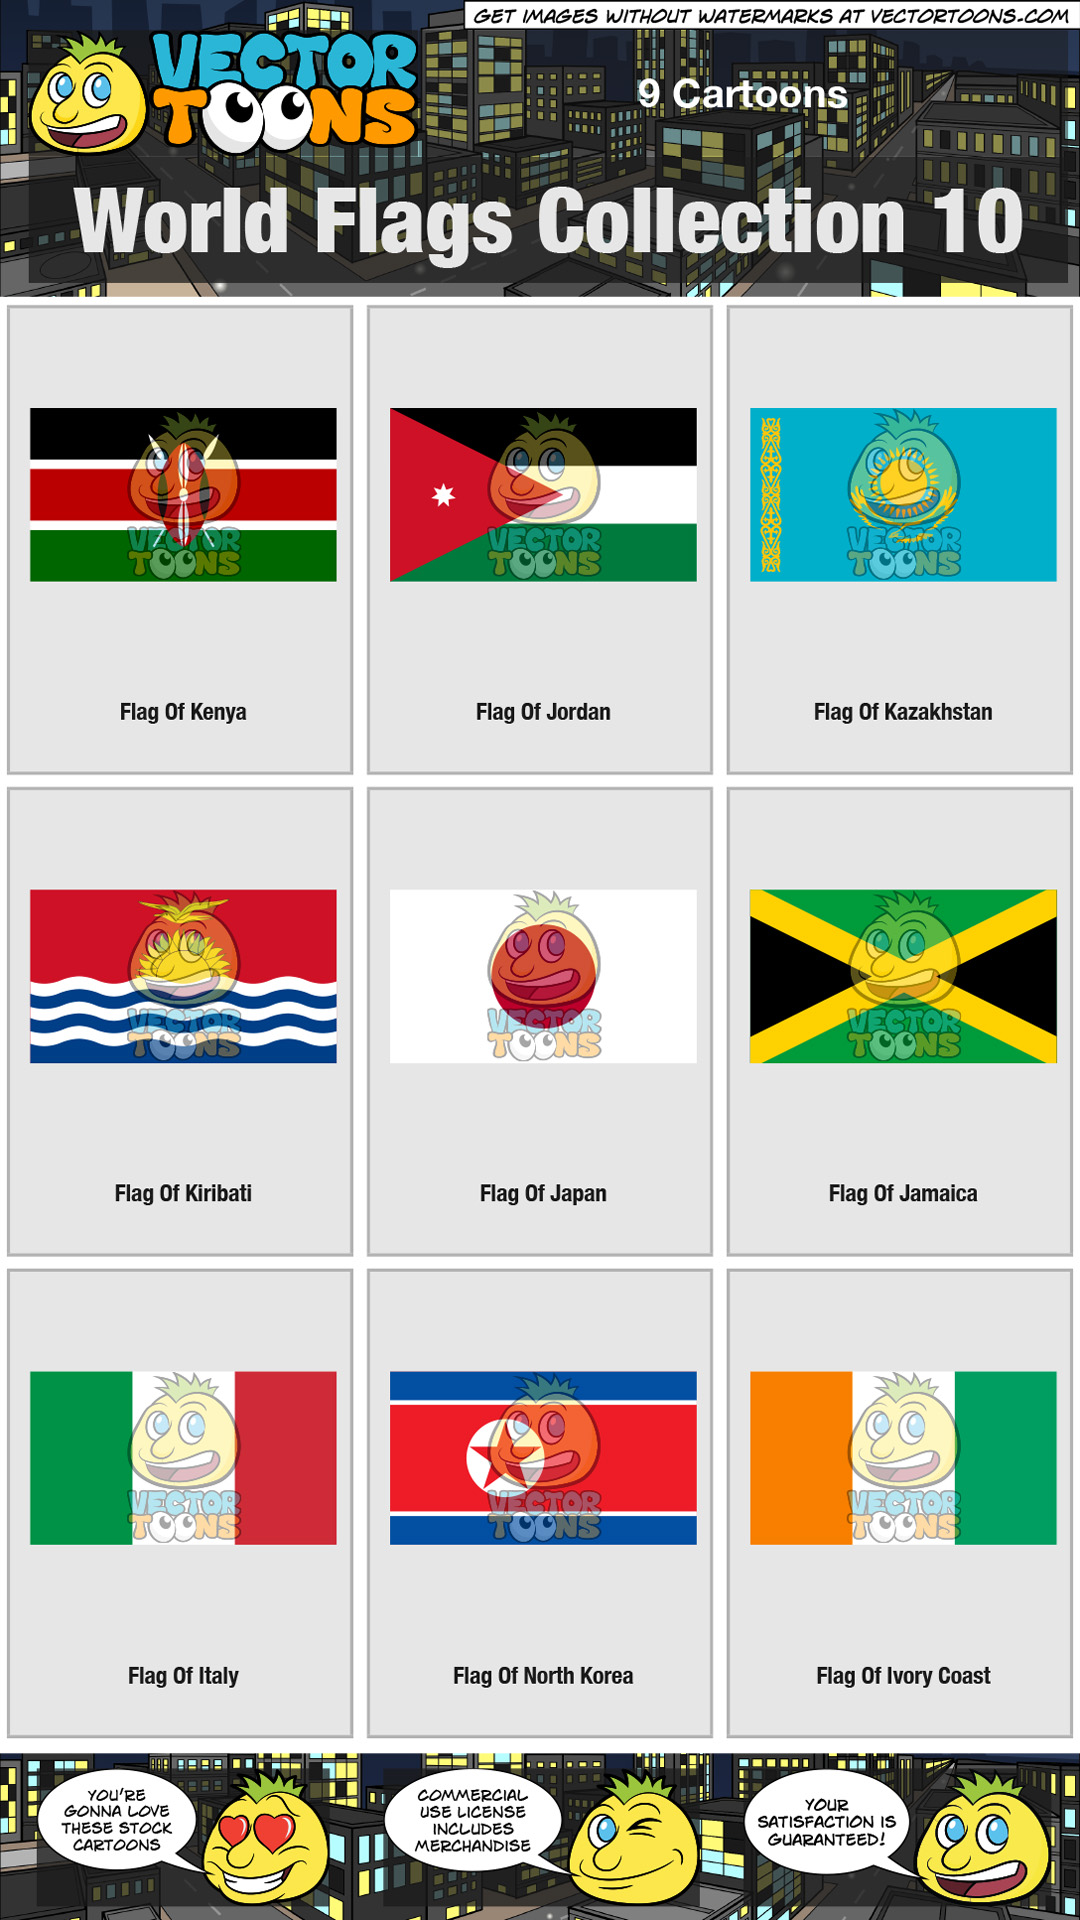 World Flags Collection 10 thumbnail